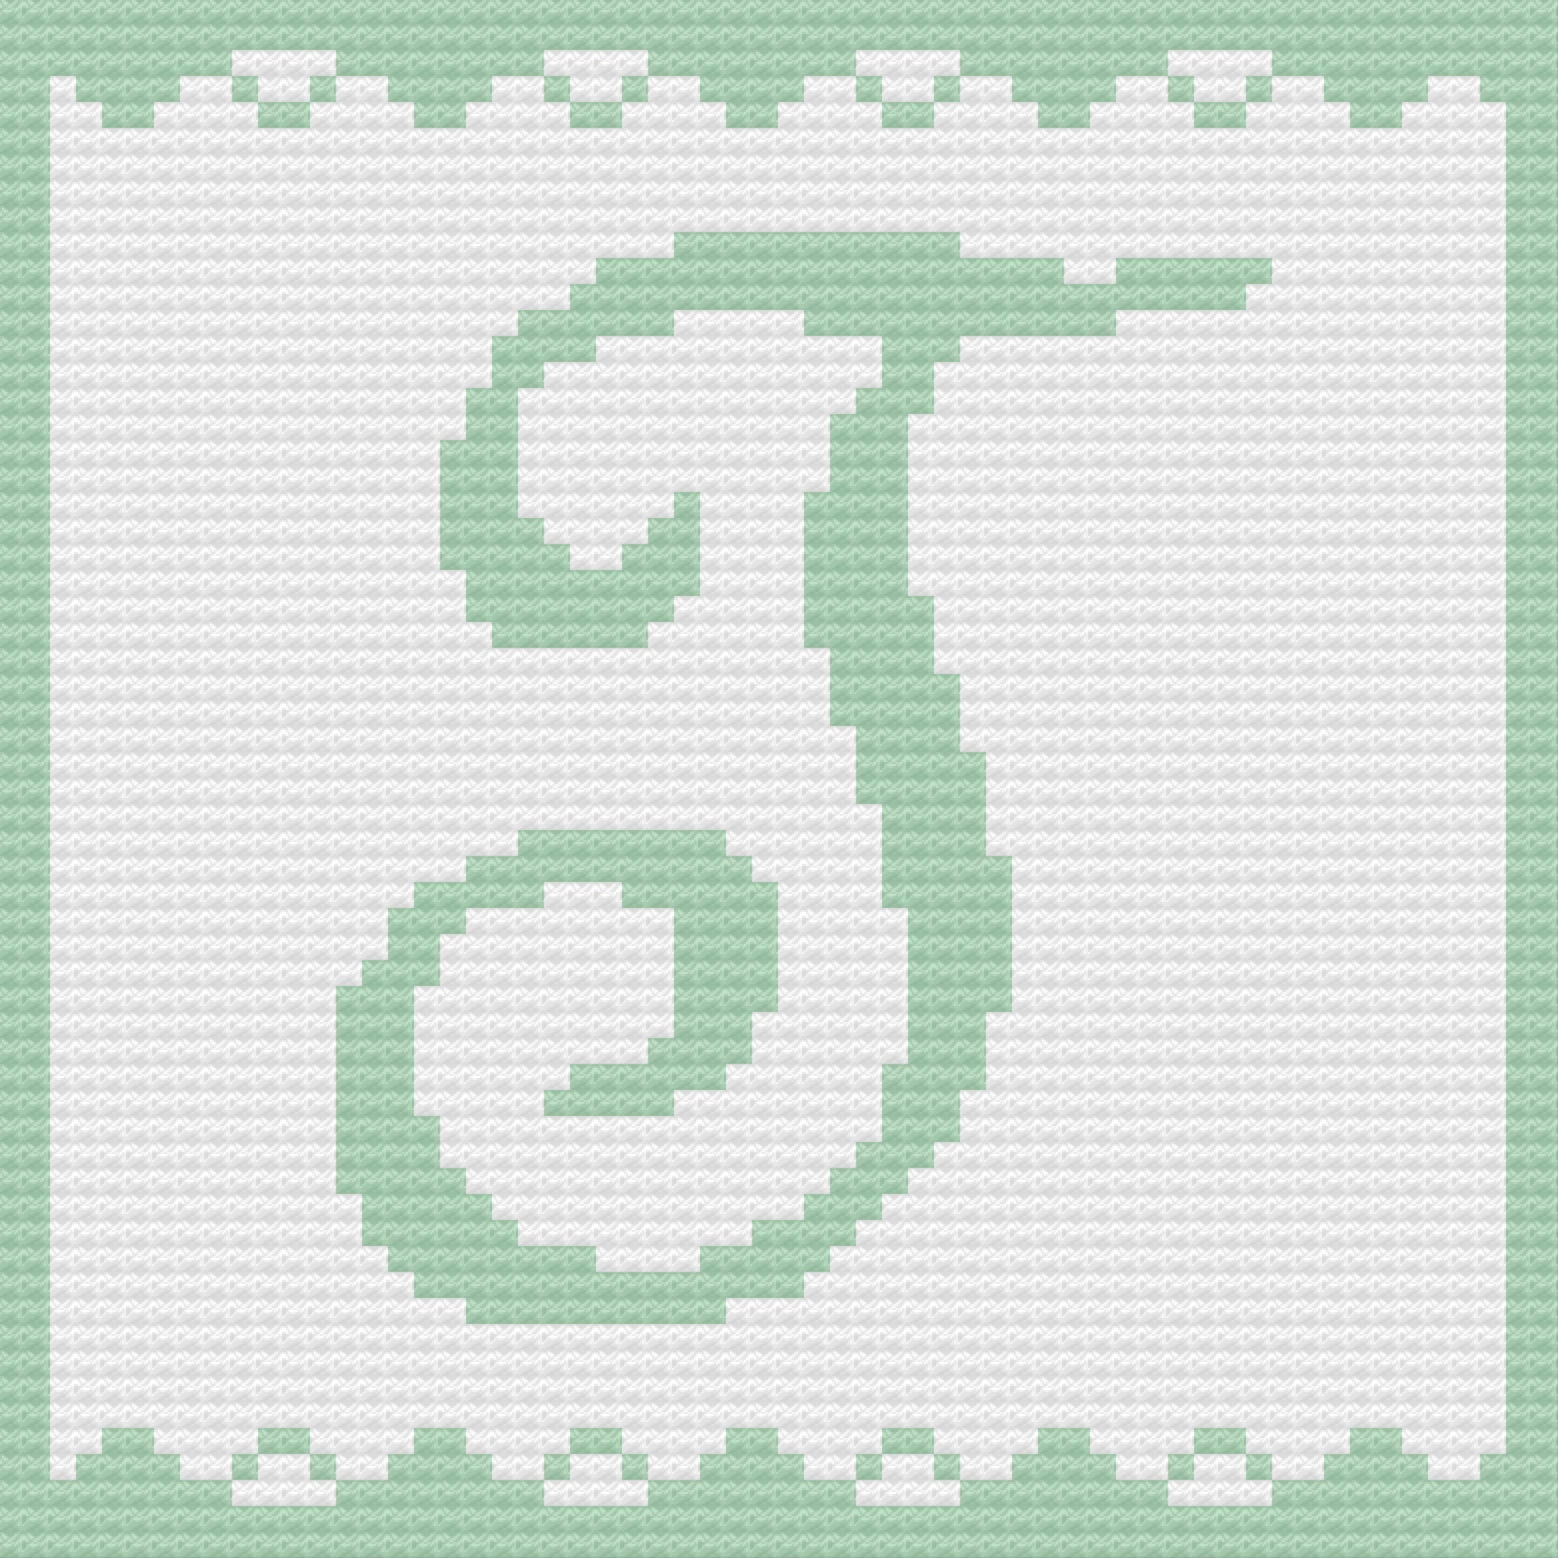 Letter T Baby Afghan C2c Crochet Pattern Written Row By